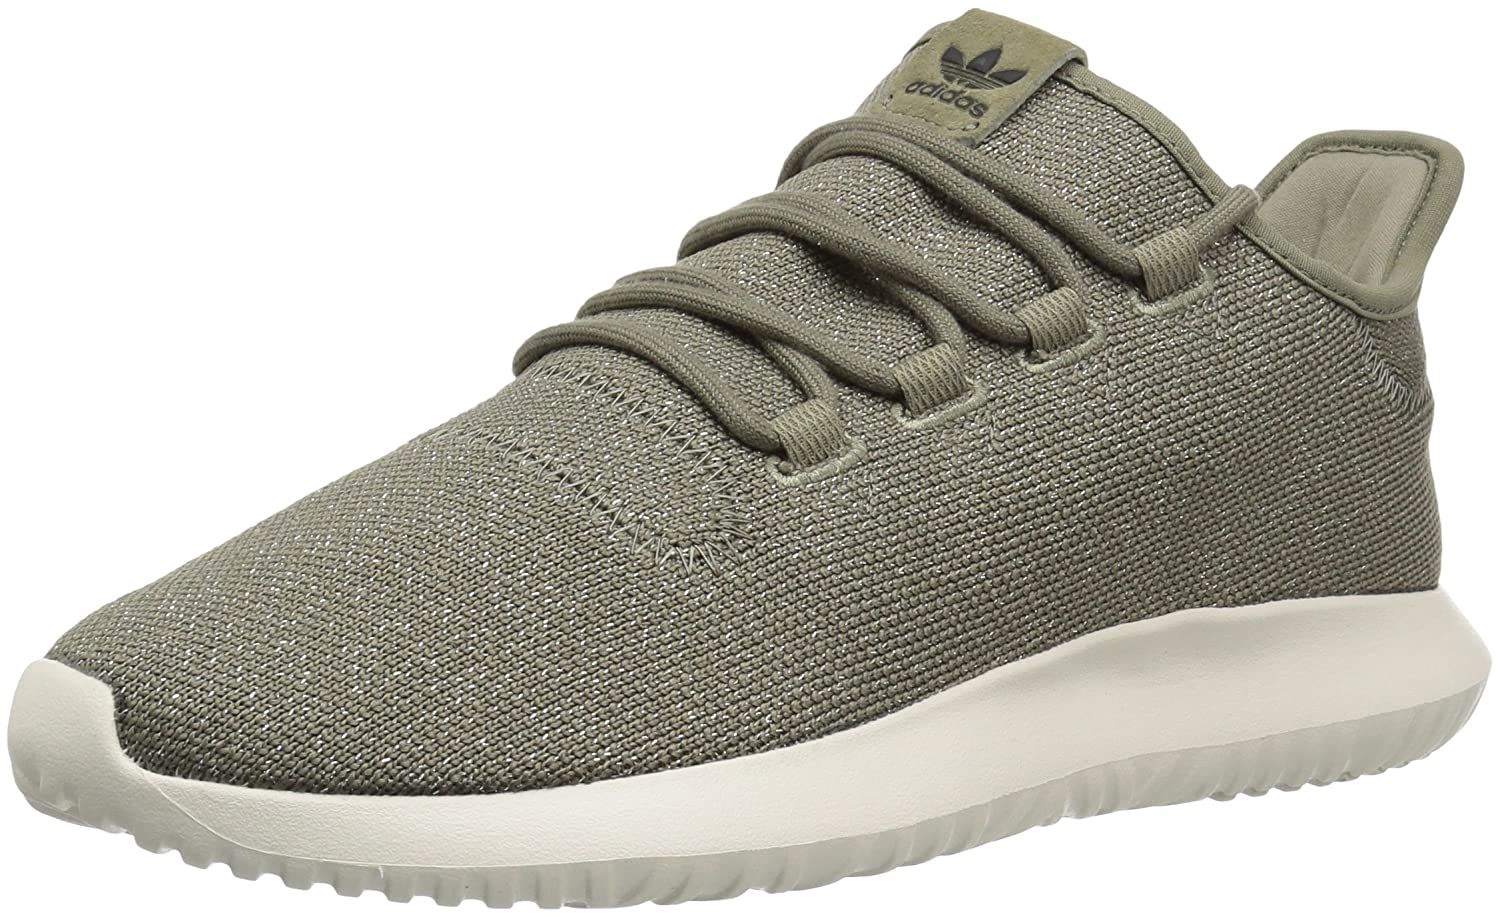 adidas Originals Women's Tubular Shadow W Fashion Sneaker B06XPMNWRC 8 B(M) US|Trace Cargo/Trace Cargo/Chalk White